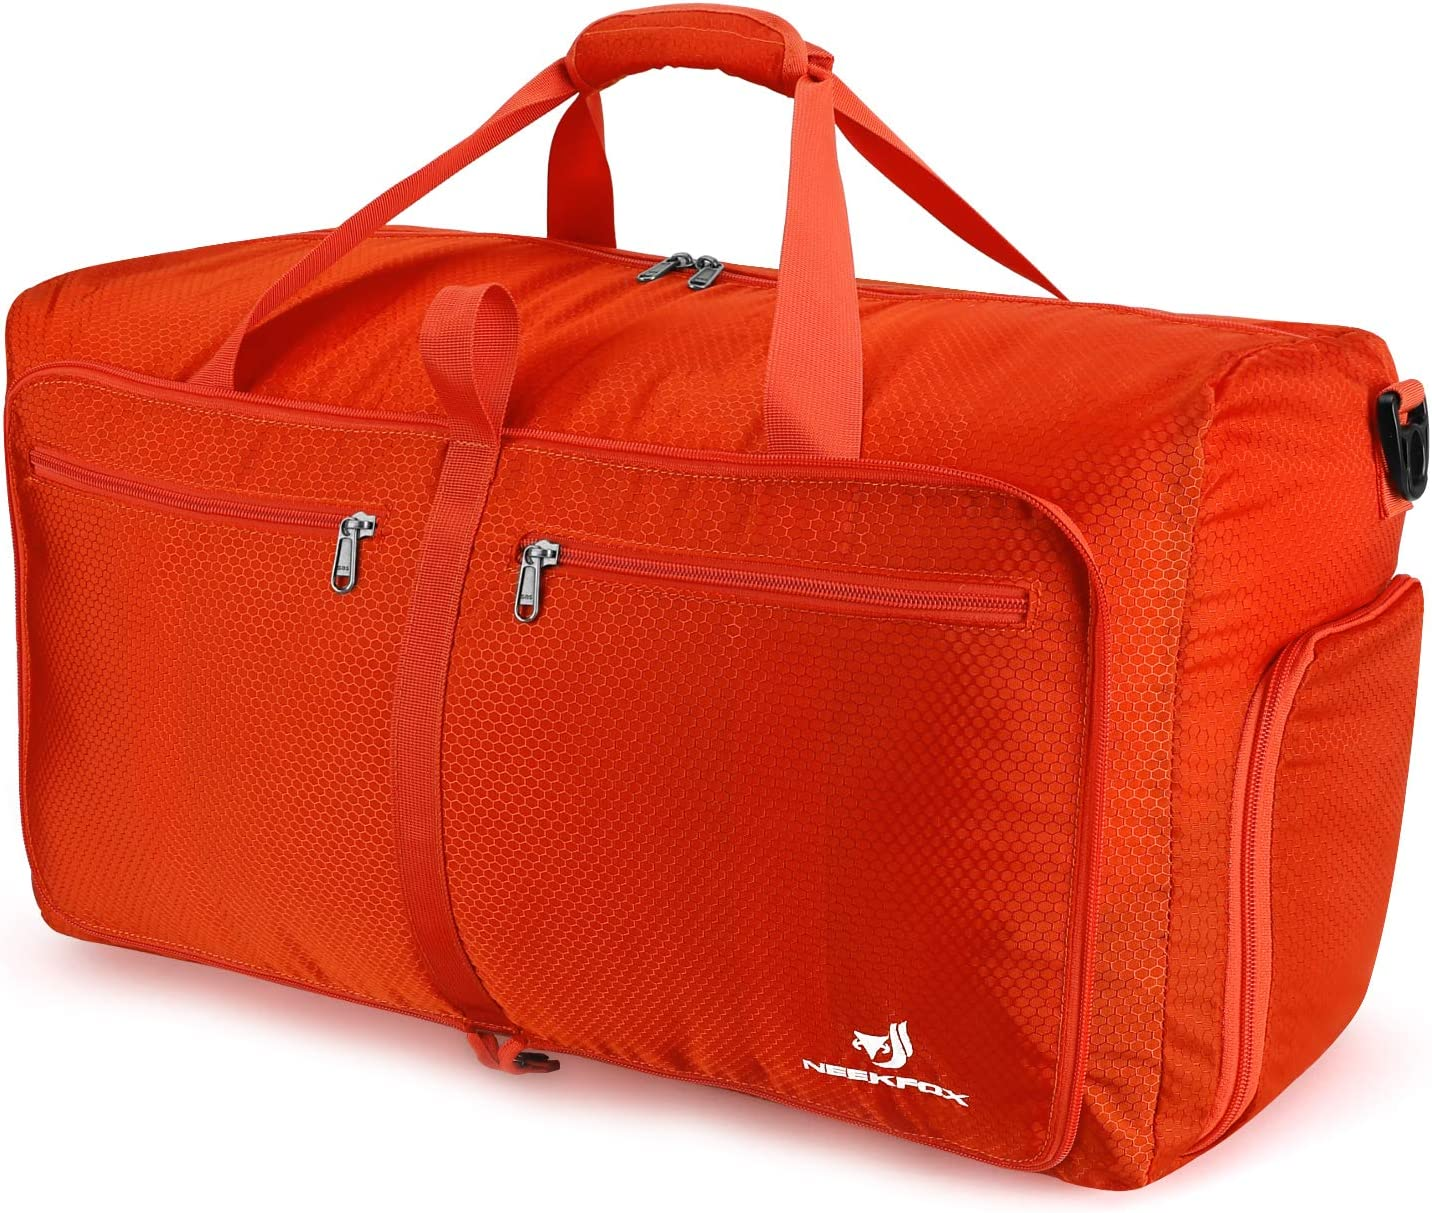 uk availability great prices 50% off NEEKFOX Foldable Travel Duffel Bag Large Sports Duffle Gym Bag Packable  Lightweight Travel Luggage Bag for Men Women (60L)